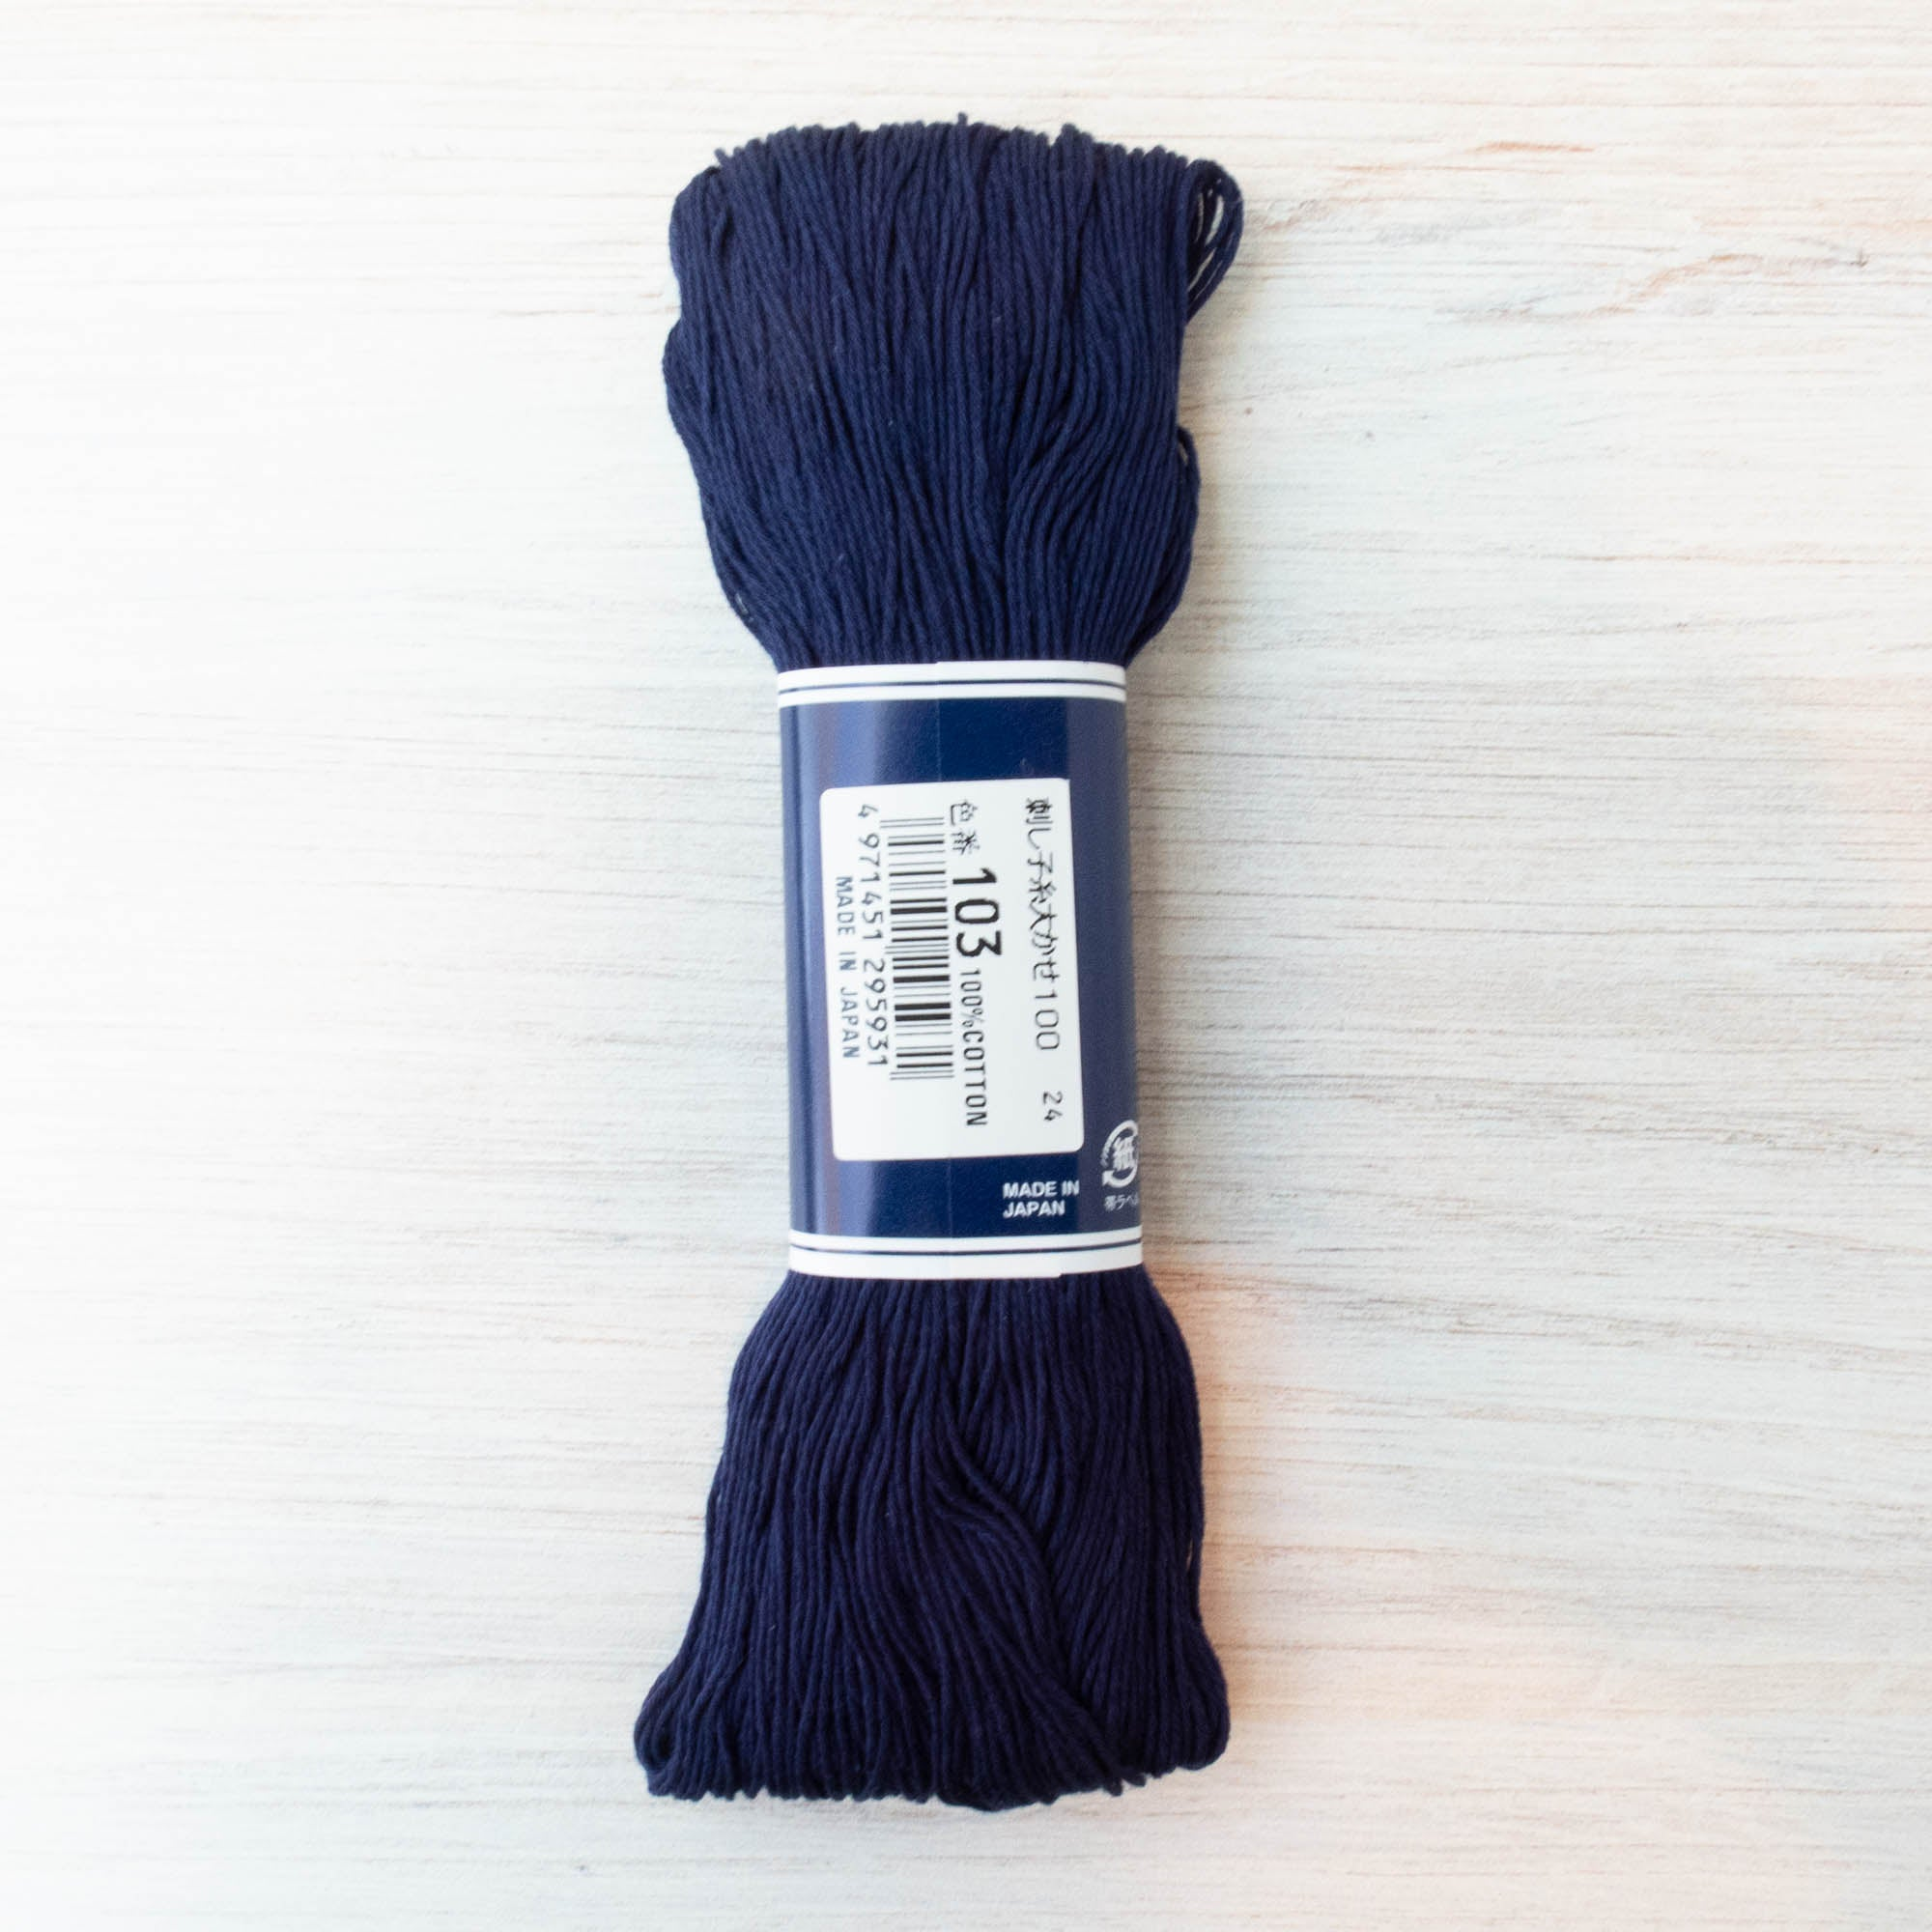 100m Large Skein Japanese Sashiko Thread - Navy (#103) Sashiko - Snuggly Monkey